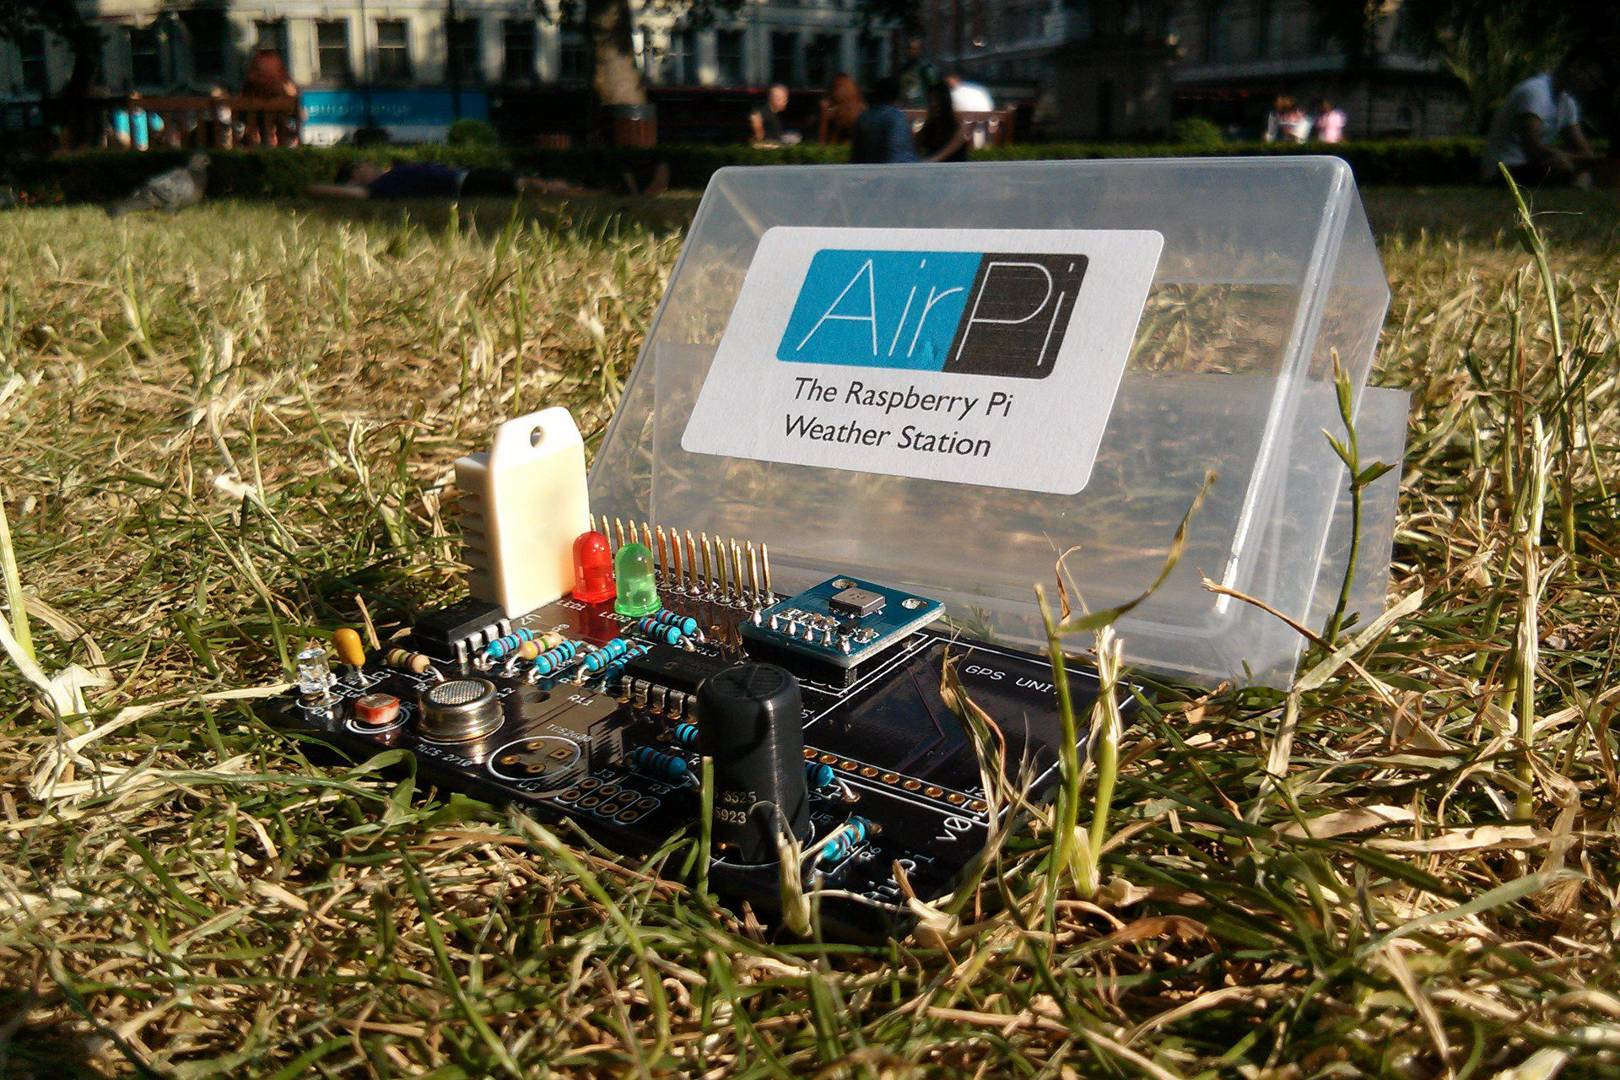 AirPi: London school kids build Raspberry Pi-powered